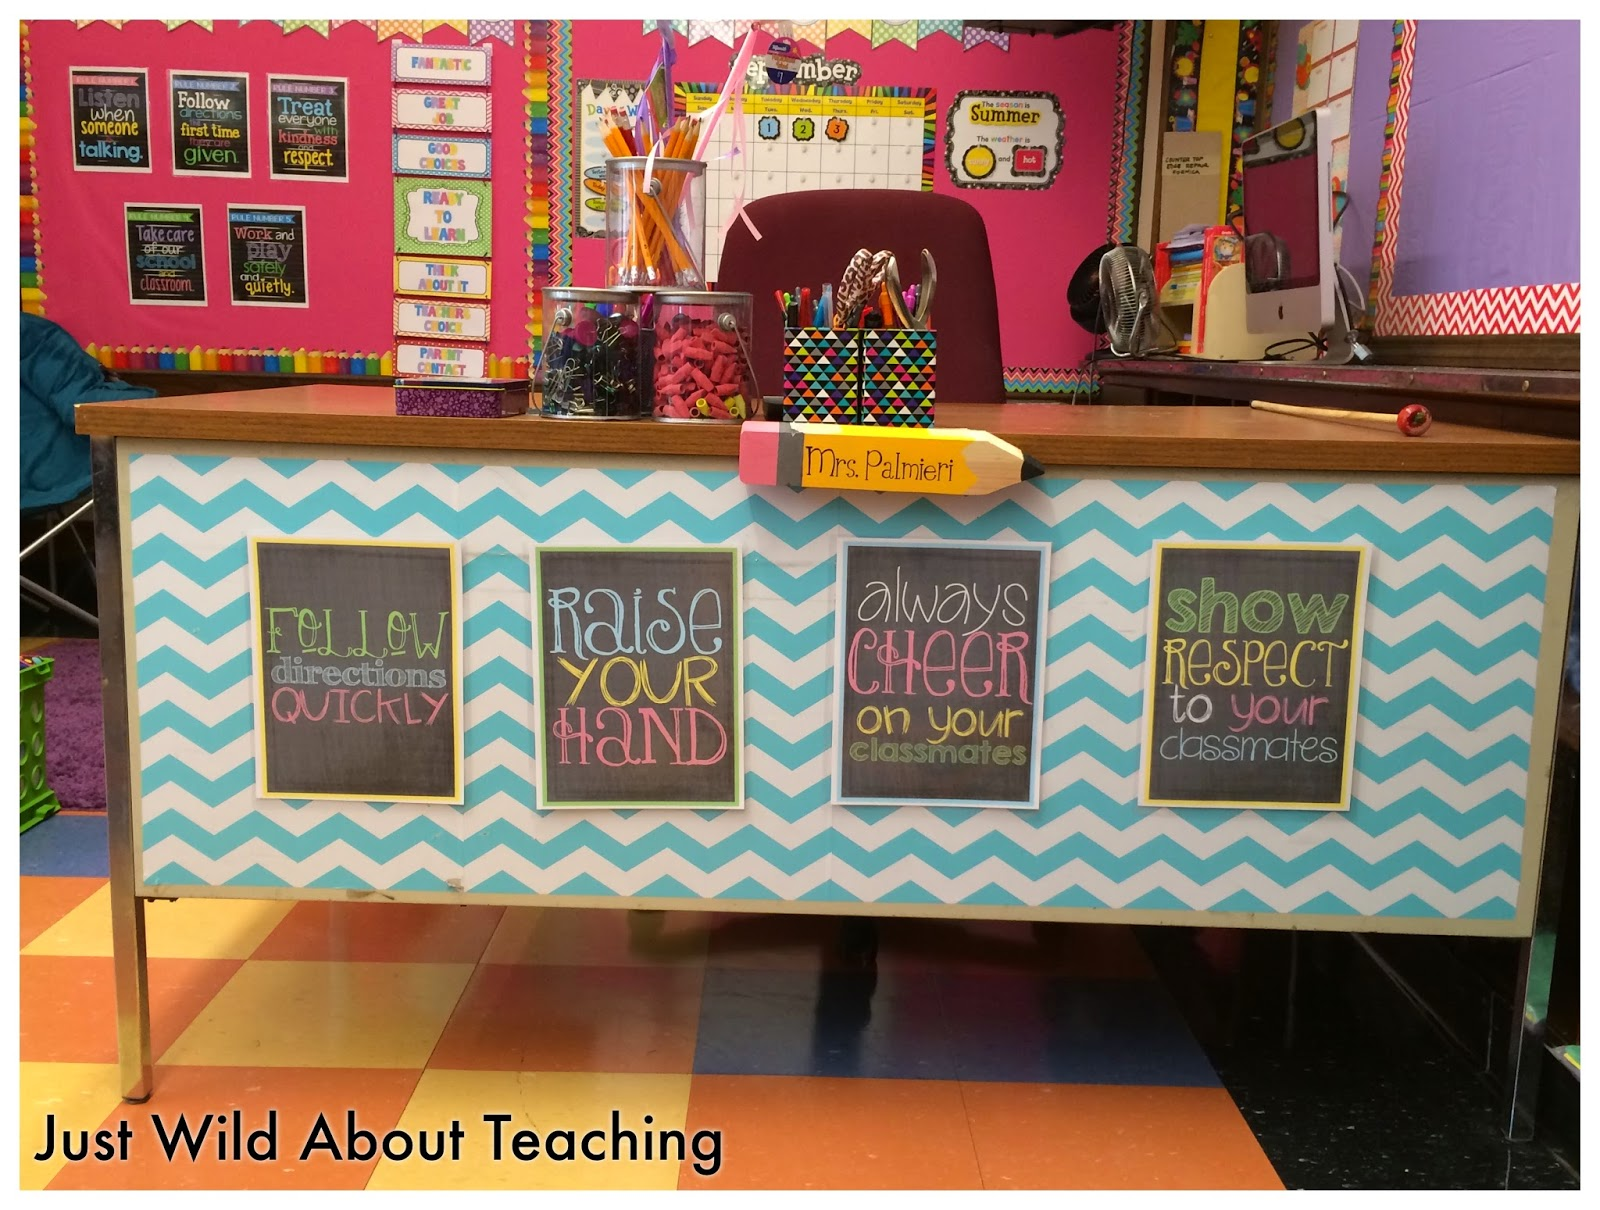 November Classroom Decoration Ideas ~ Just wild about teaching classroom reveal